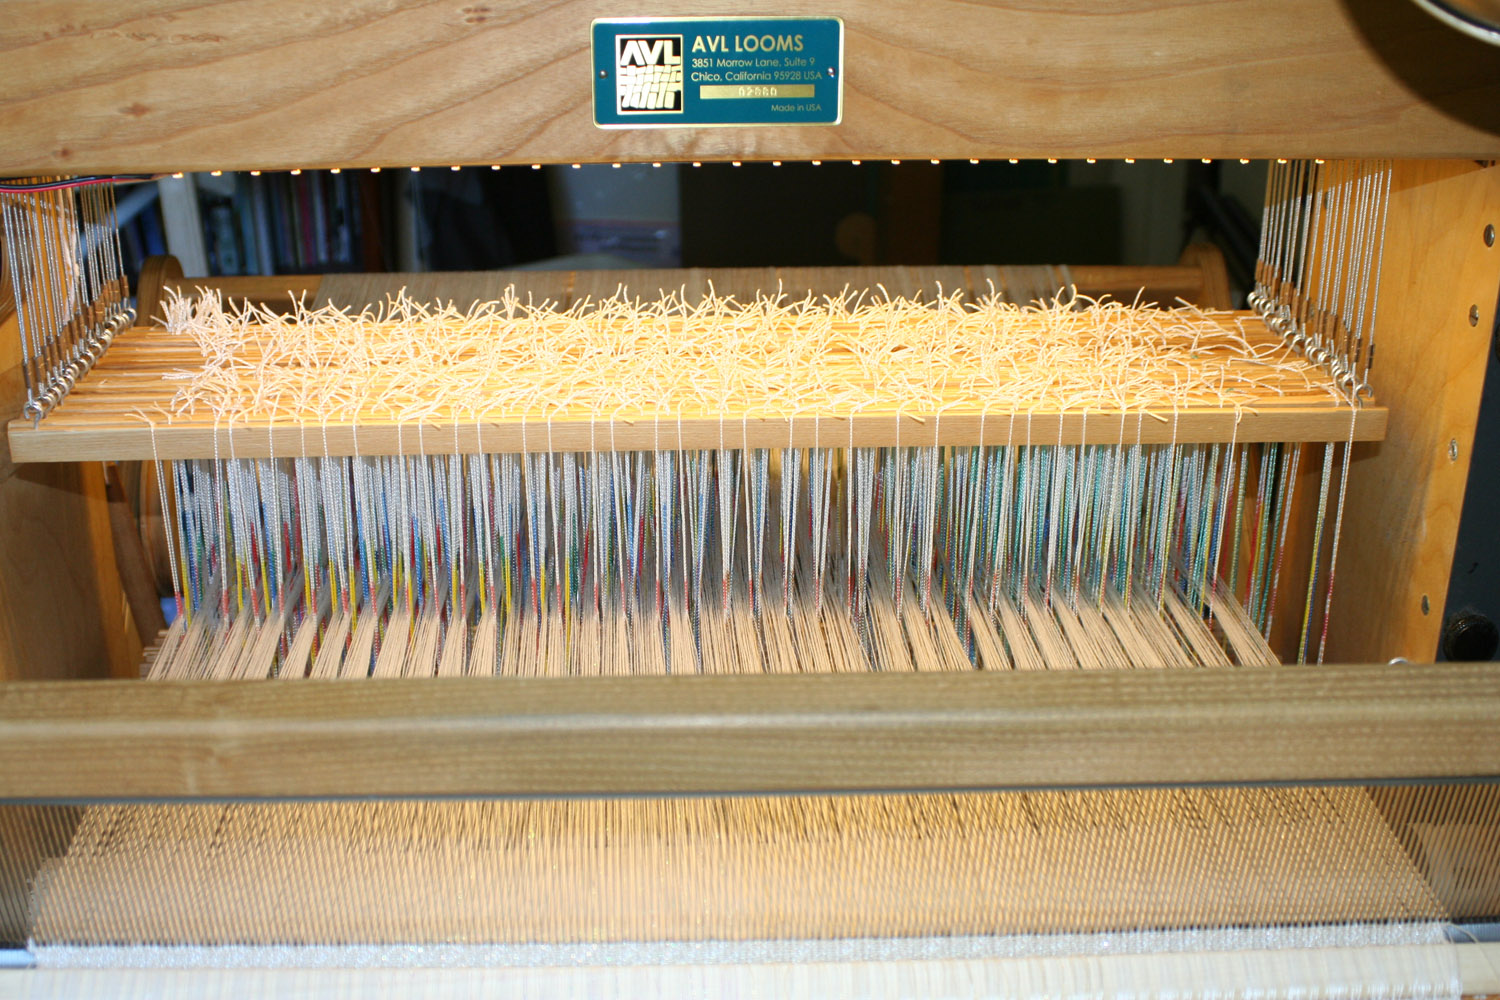 Strip out all of the loom